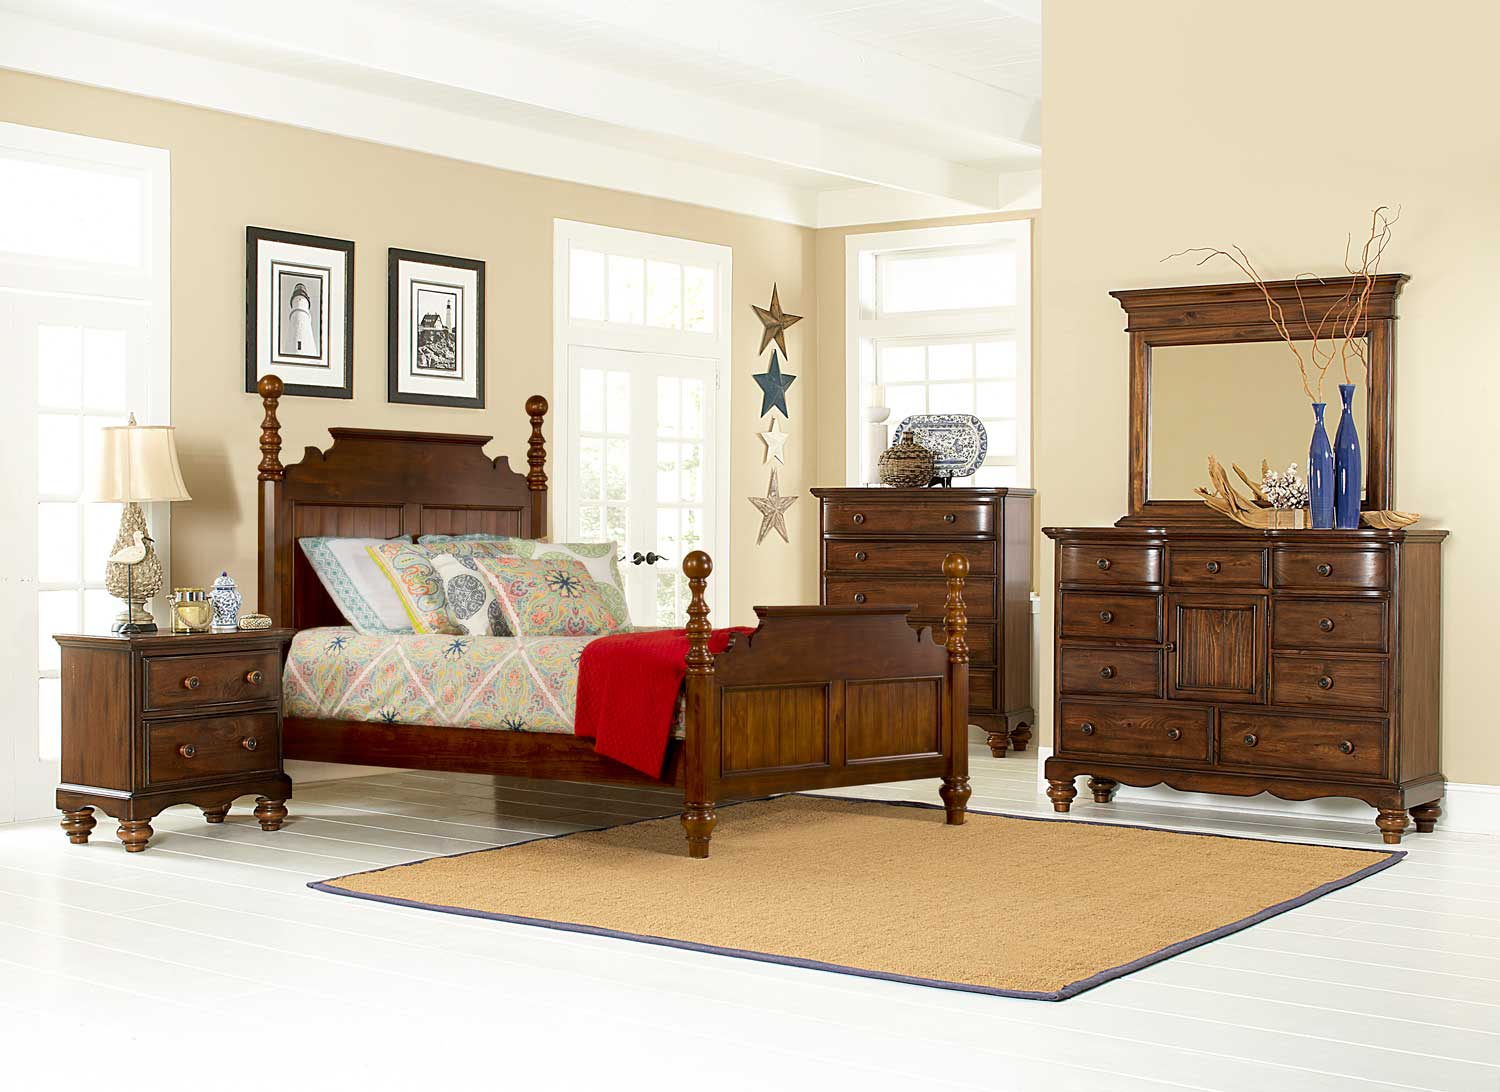 Hillsdale Pine Island Post Bedroom Set - Dark Pine